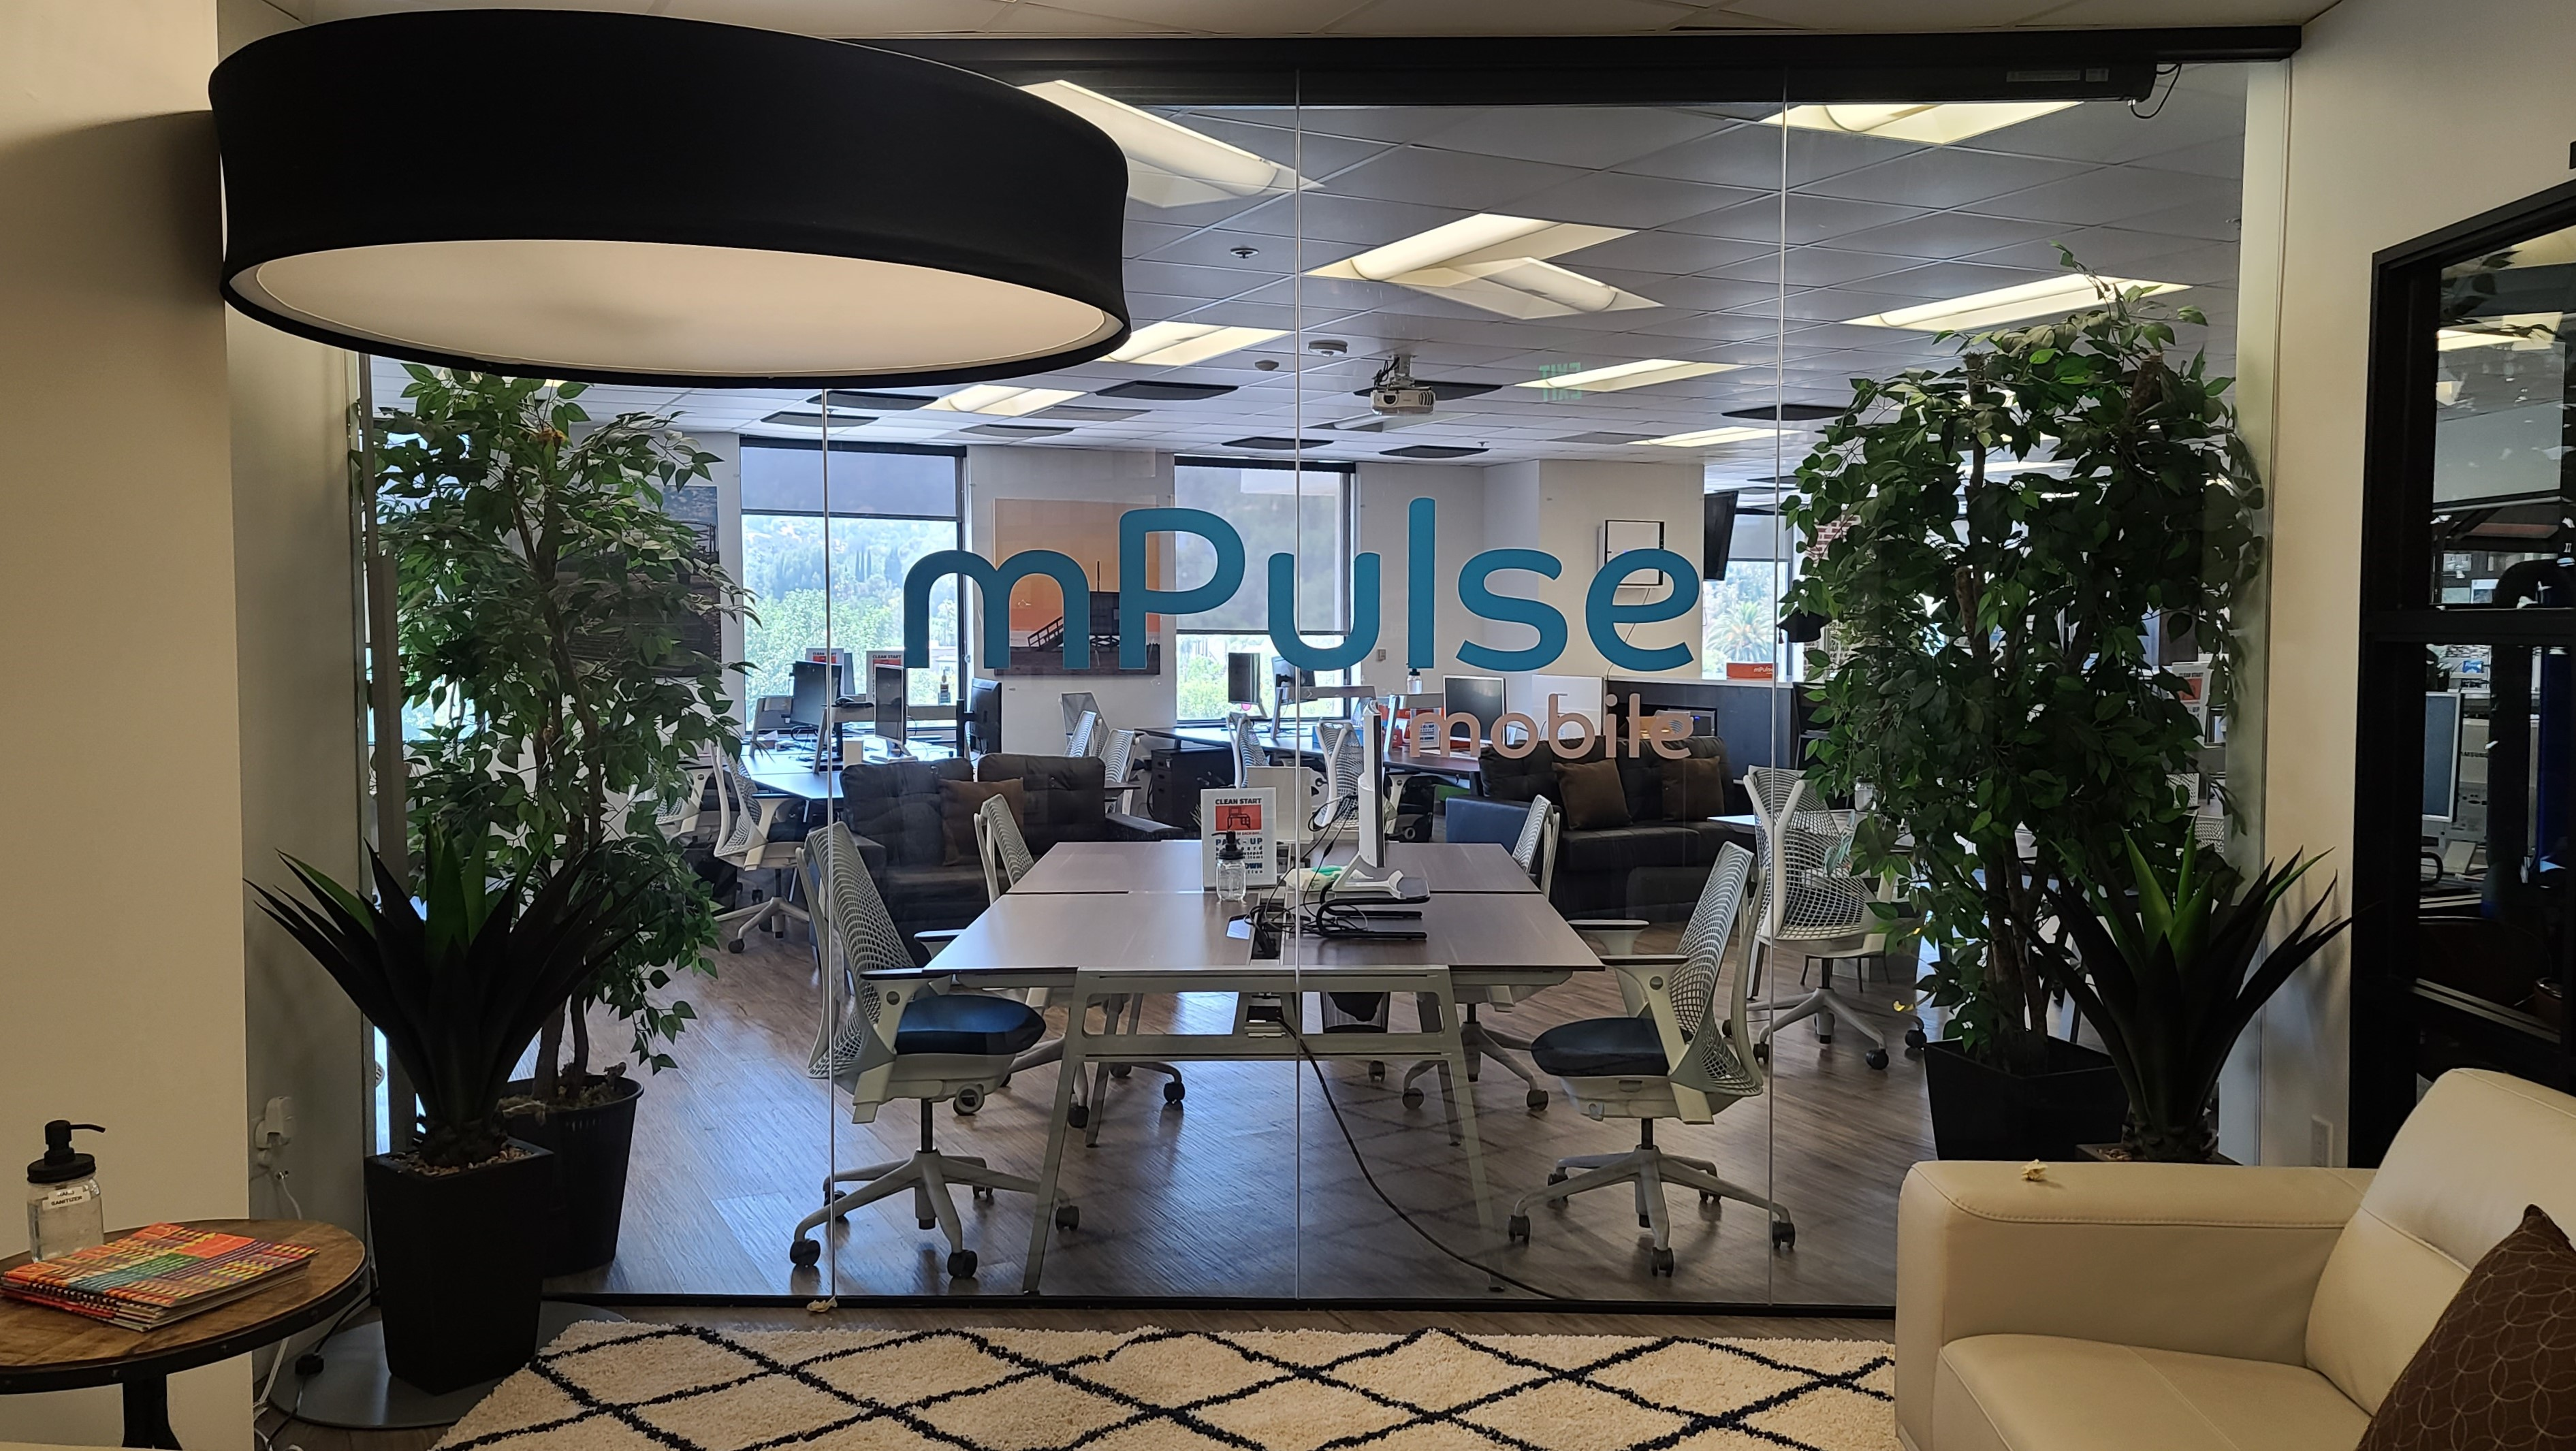 More from our office sign package for mPulse Mobile. These office window graphics enhance their Encino workplace, adding to its sleek and stylish appearance.